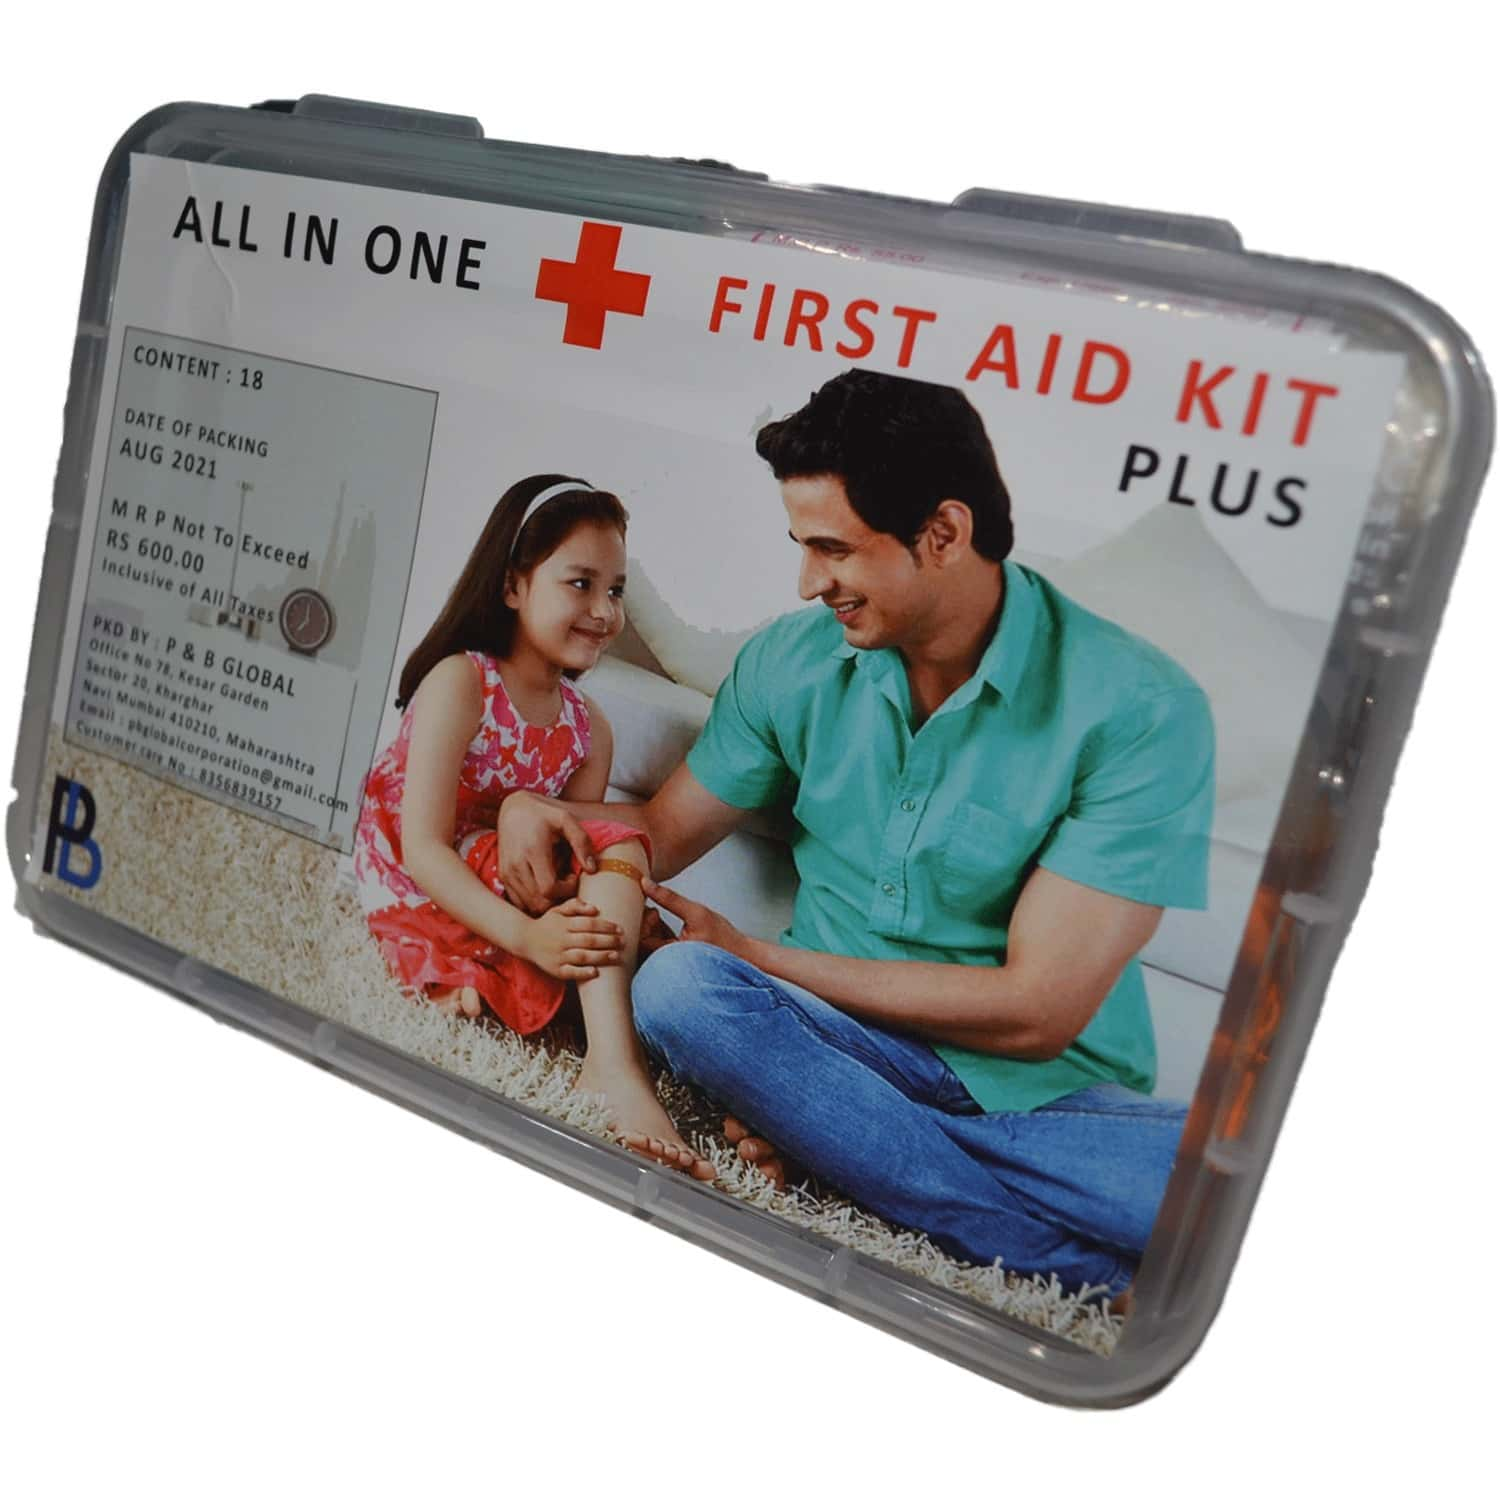 All In One First Aid Kit Plus